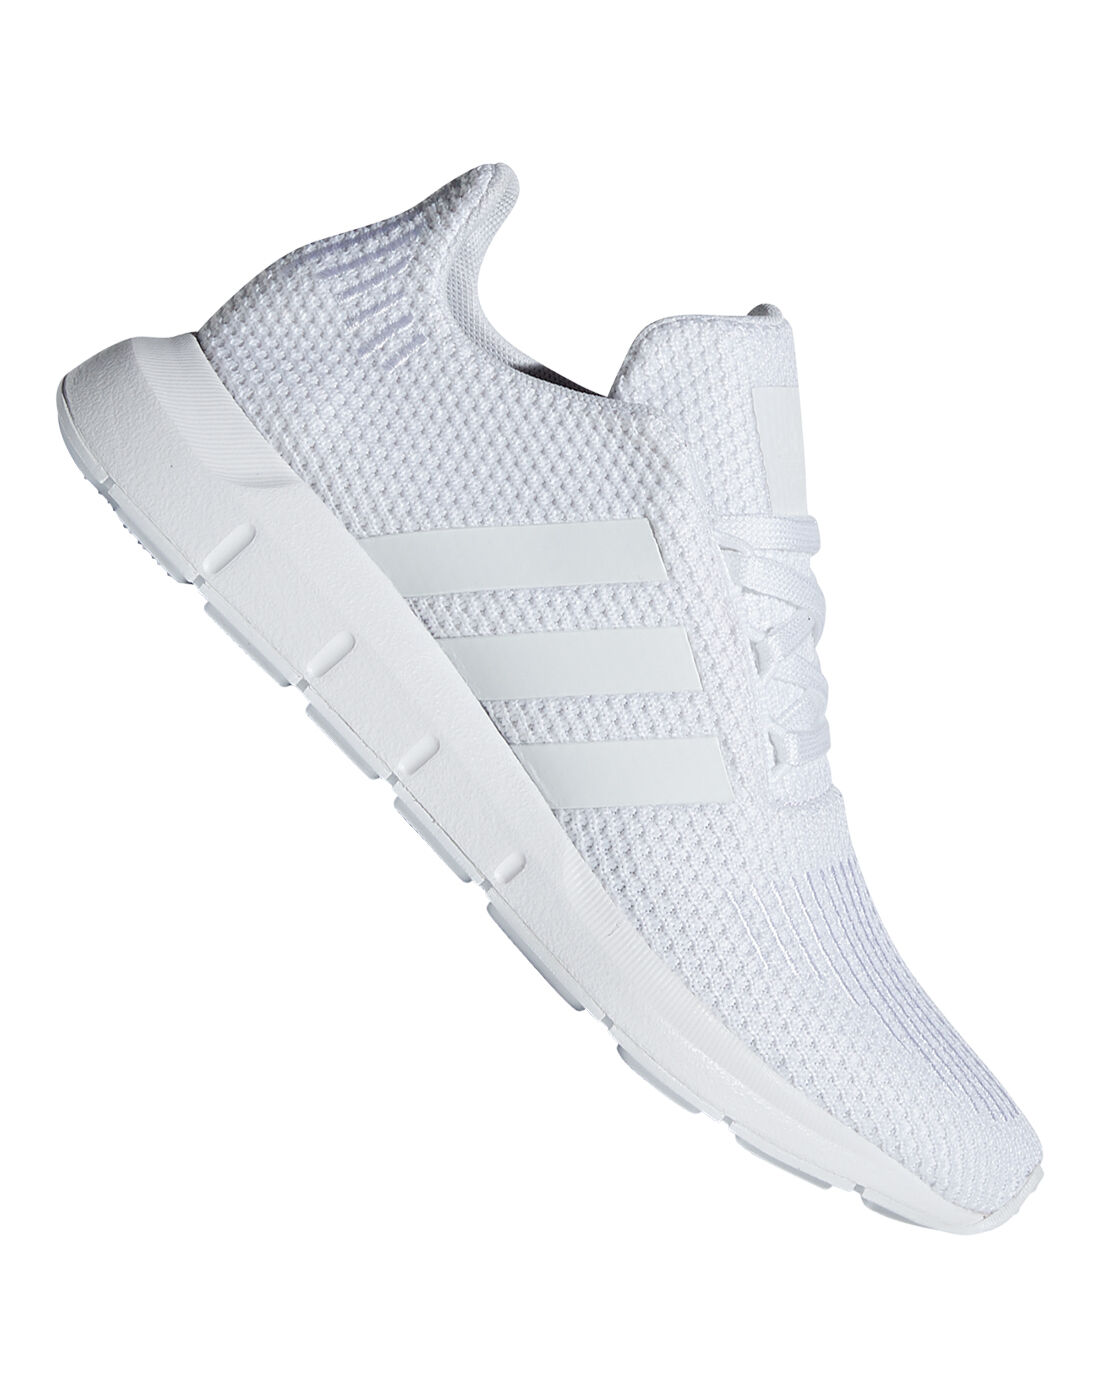 Details about Shoes adidas Swift Run I White Kids